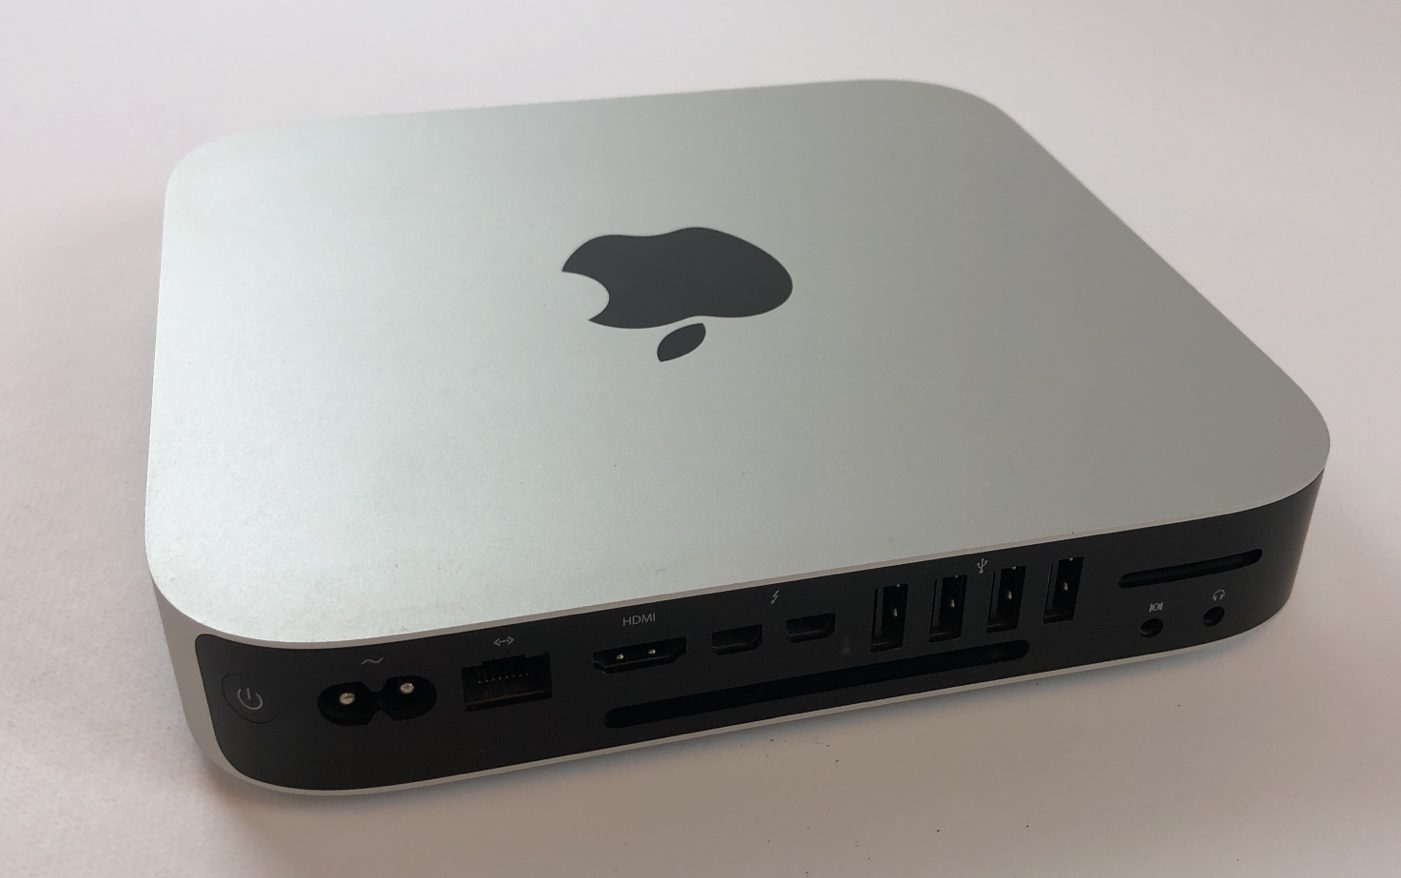 Mac Mini Late 2014 (Intel Core i5 1.4 GHz 4 GB RAM 500 GB HDD), Intel Core i5 1.4 GHz, 4 GB RAM, 500 GB HDD, Afbeelding 2